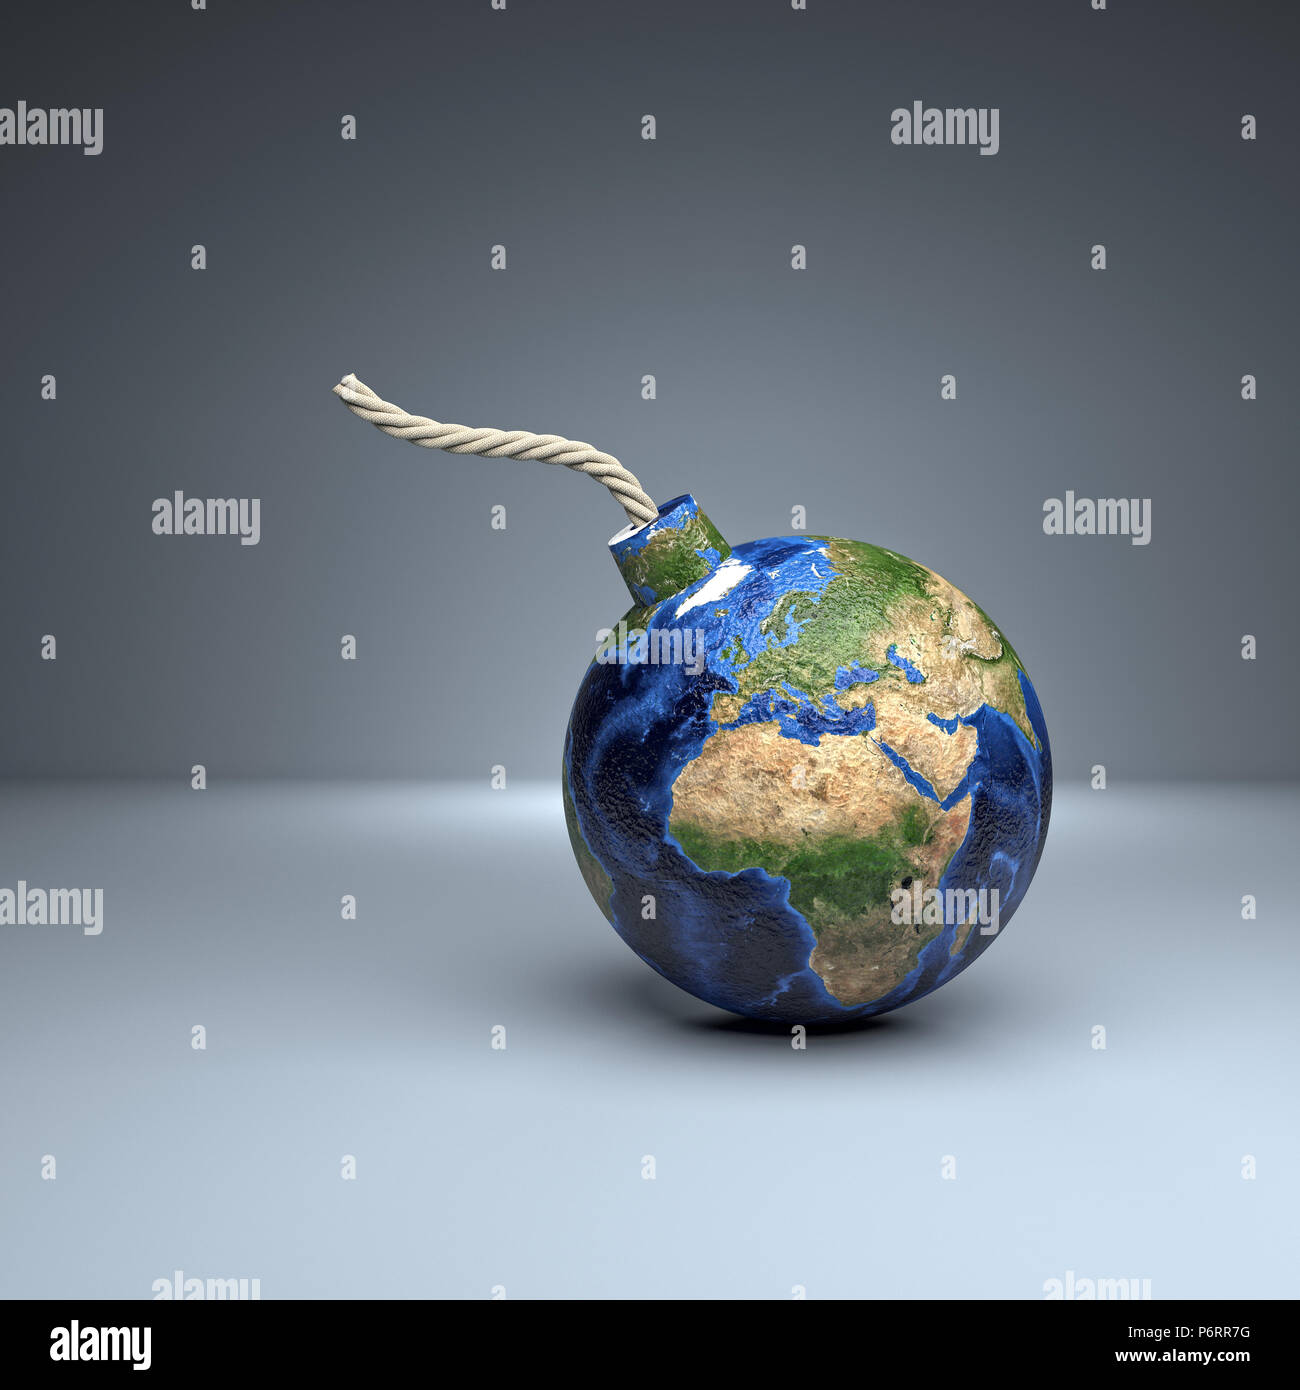 classic bomb with world map europe side 3d rendering image - Stock Image